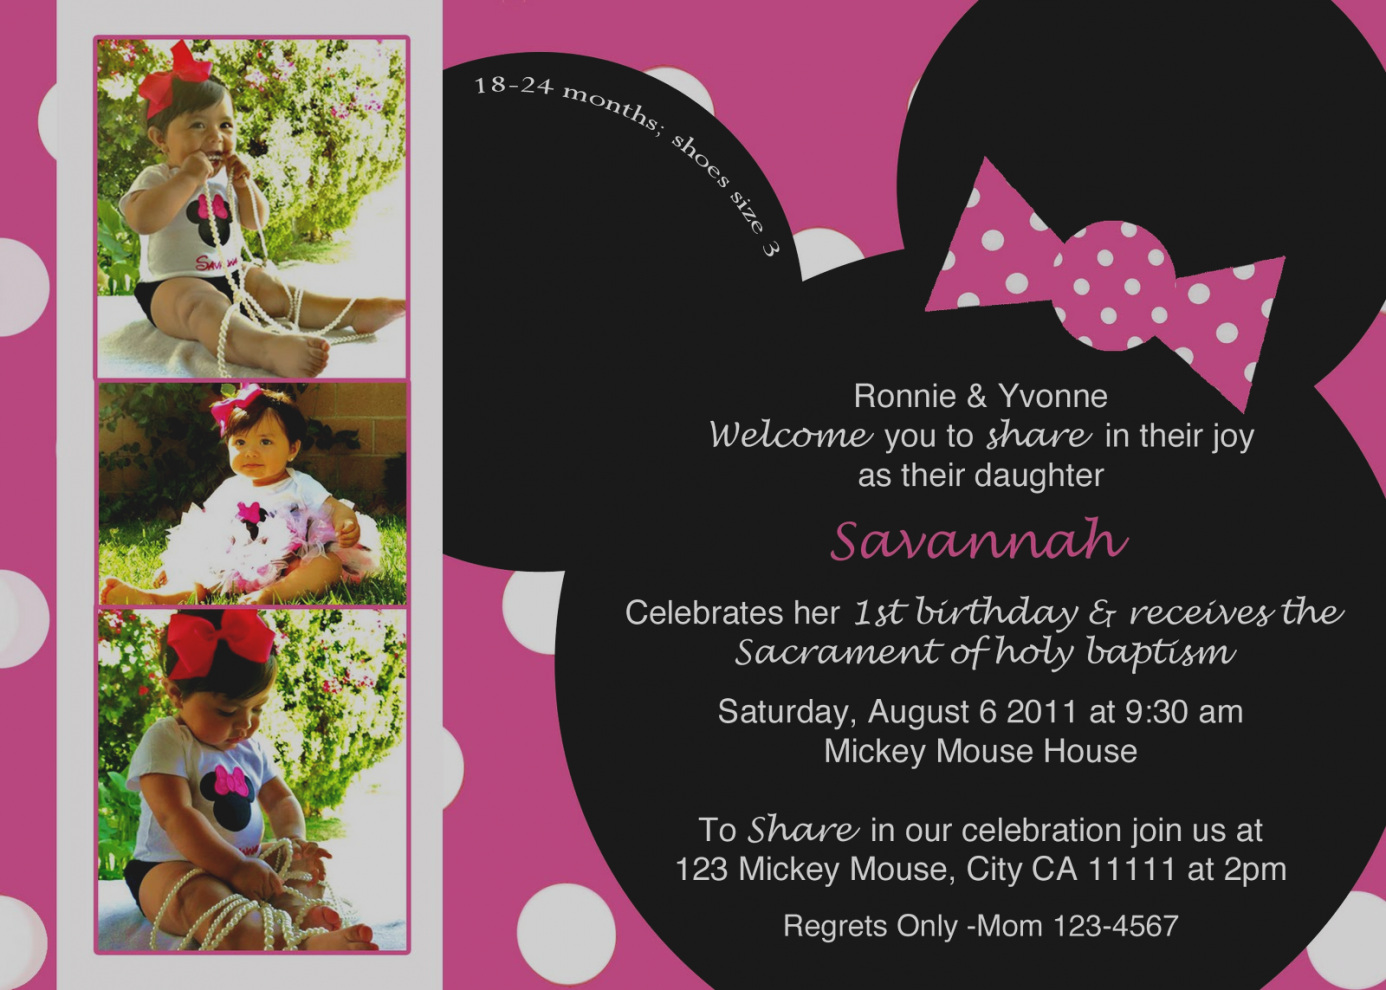 minnie mouse 2nd birthday party invitation wording ; elegant-minnie-mouse-birthday-invitation-wording-free-invitations-templates-invitetown-emys-2nd